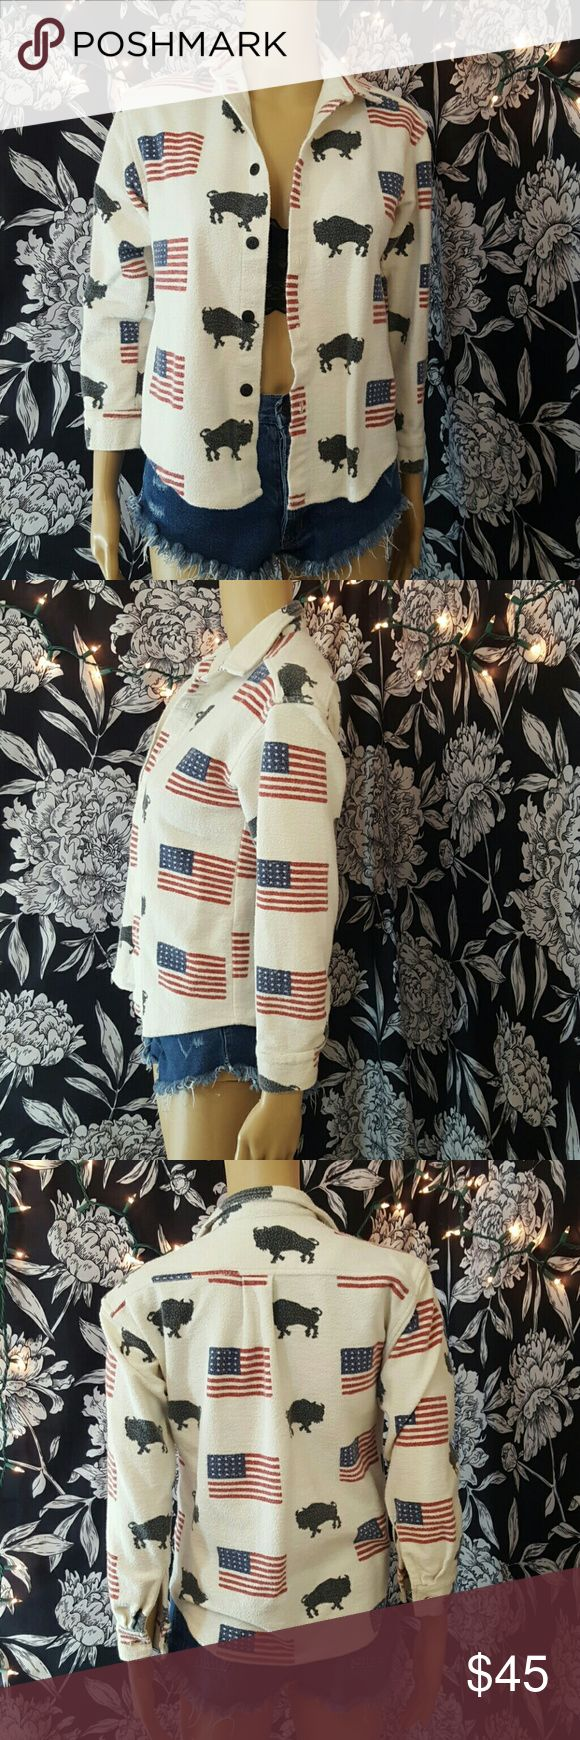 """Vintage americana button down Cream colored button down with American flag & bison print.    Brand- true grit Size- s  Approximate measurements laying flat  17.5"""" underarm to underarm  23"""" top of shoulder to bottom hem  19.5"""" sleeve length Vintage Tops Button Down Shirts"""